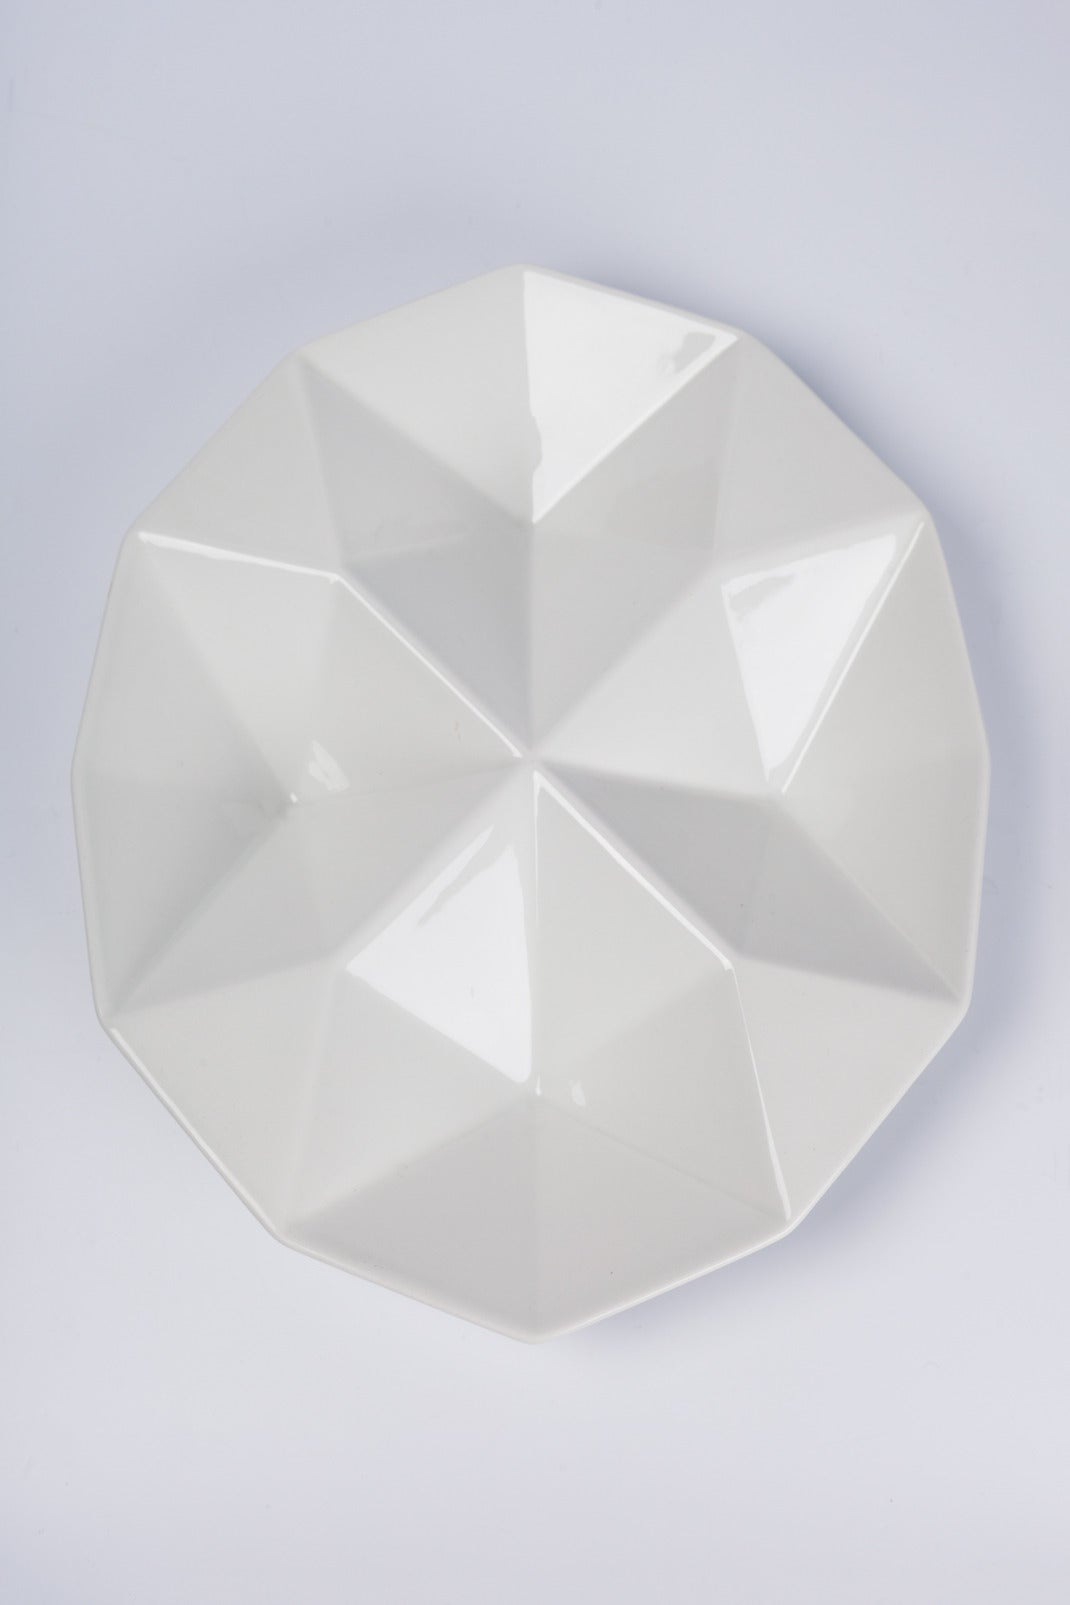 White, oval multifaceted ceramic tray with clear gloss glaze. The geometric pattern like the folds of origami reflects light differently on every facet. Designed in the 1960s by Kaj Franck for Arabia of Finland. Two available.   Kaj Franck (born in